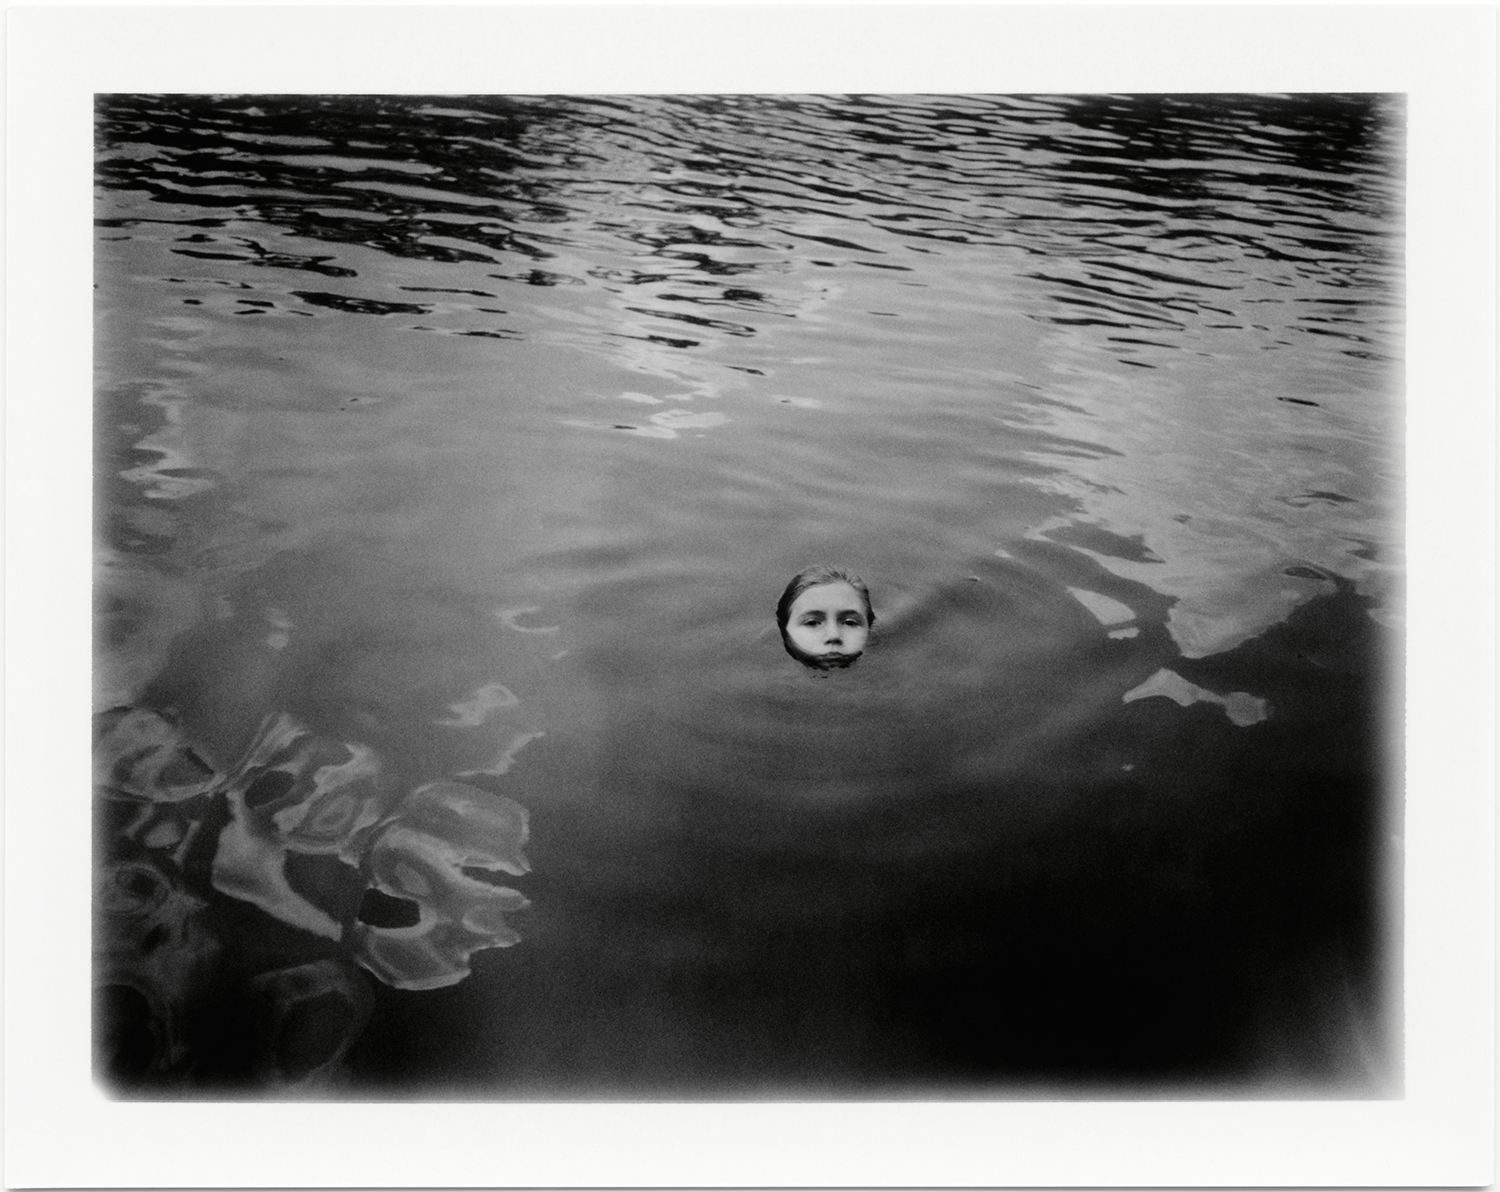 "Emergence, 2012, Gresham, South Carolina ; Polaroid Print, 3.25 x 4.25"" Fuji FP-3000B; Polaroid Land 100 camera  ©  Jennifer Ervin"